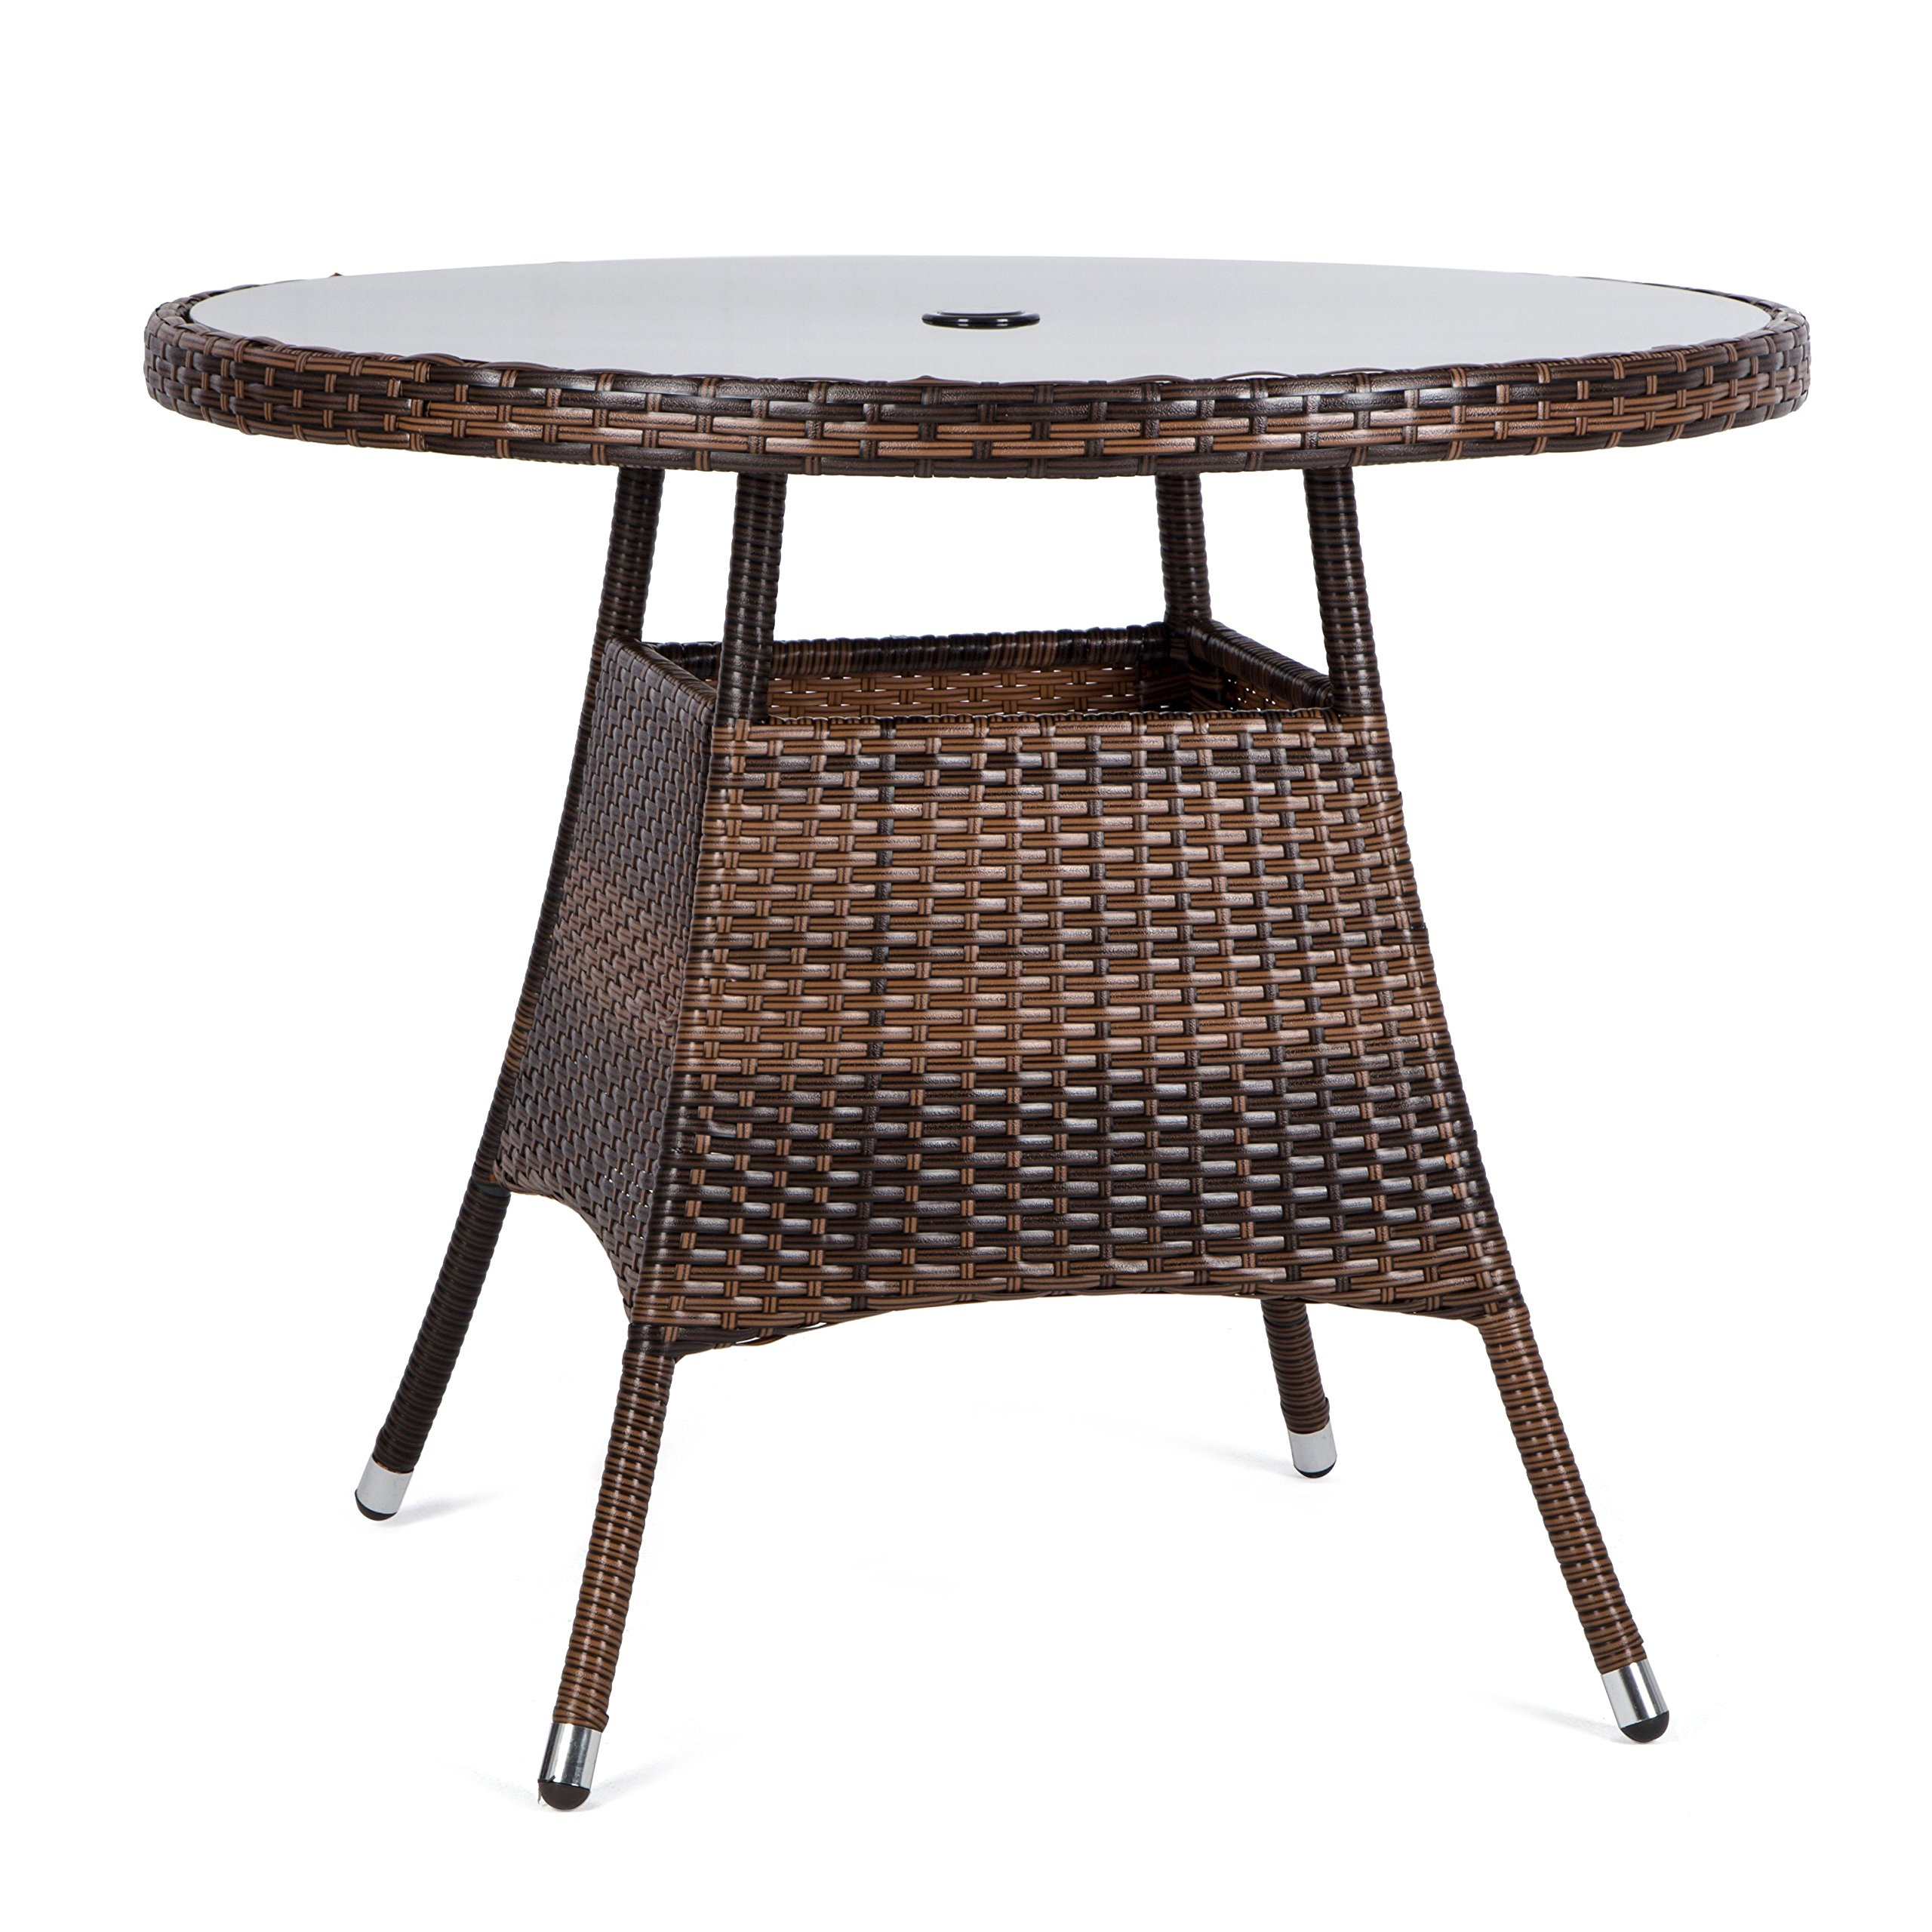 LUCKUP 36'' Patio Outdoor Wicker Rattan Dining Table Tempered Glass Top Umbrella Stand Round Table (Chocolate)